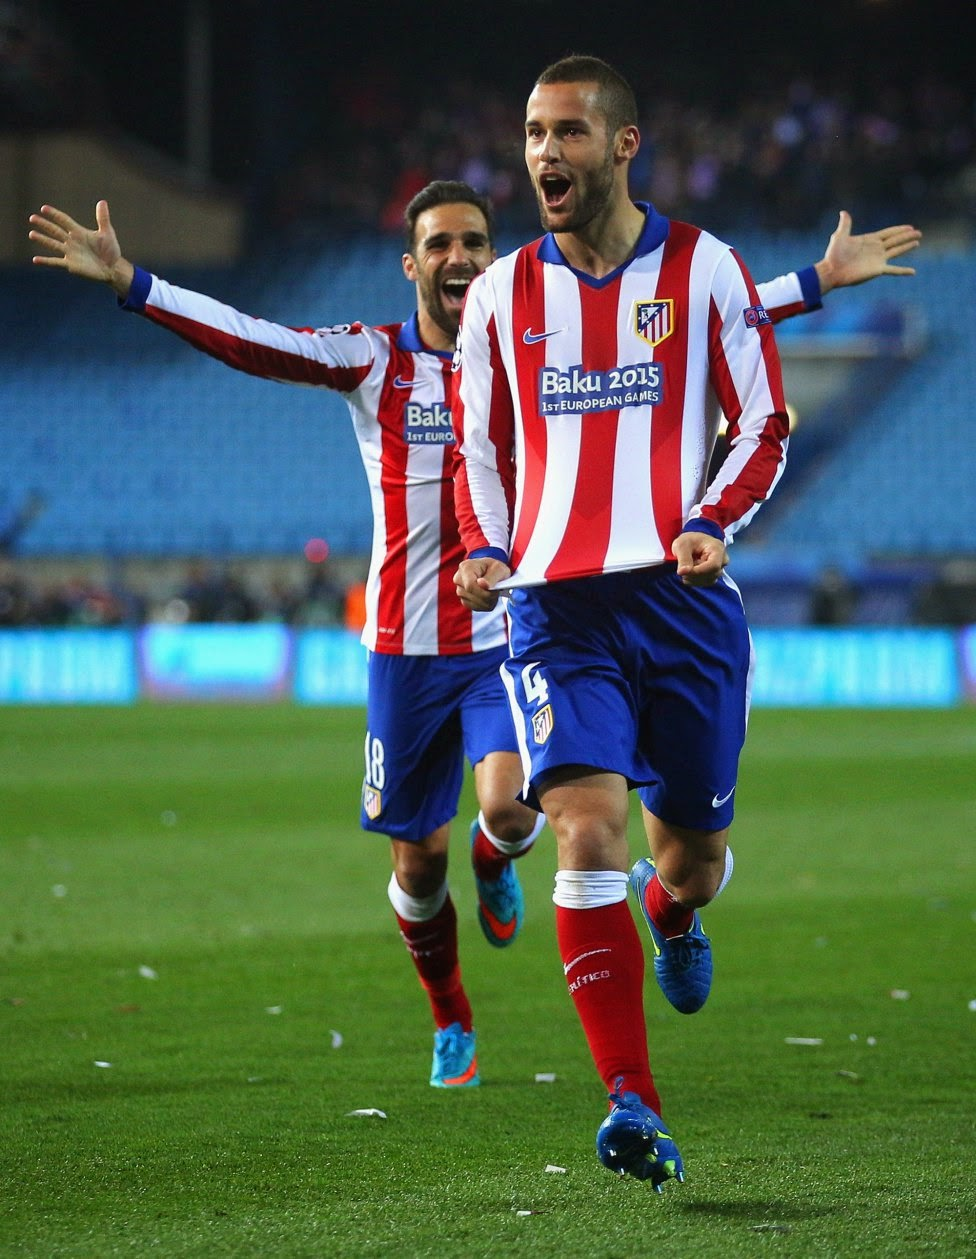 ATLETICO MADRID 2015